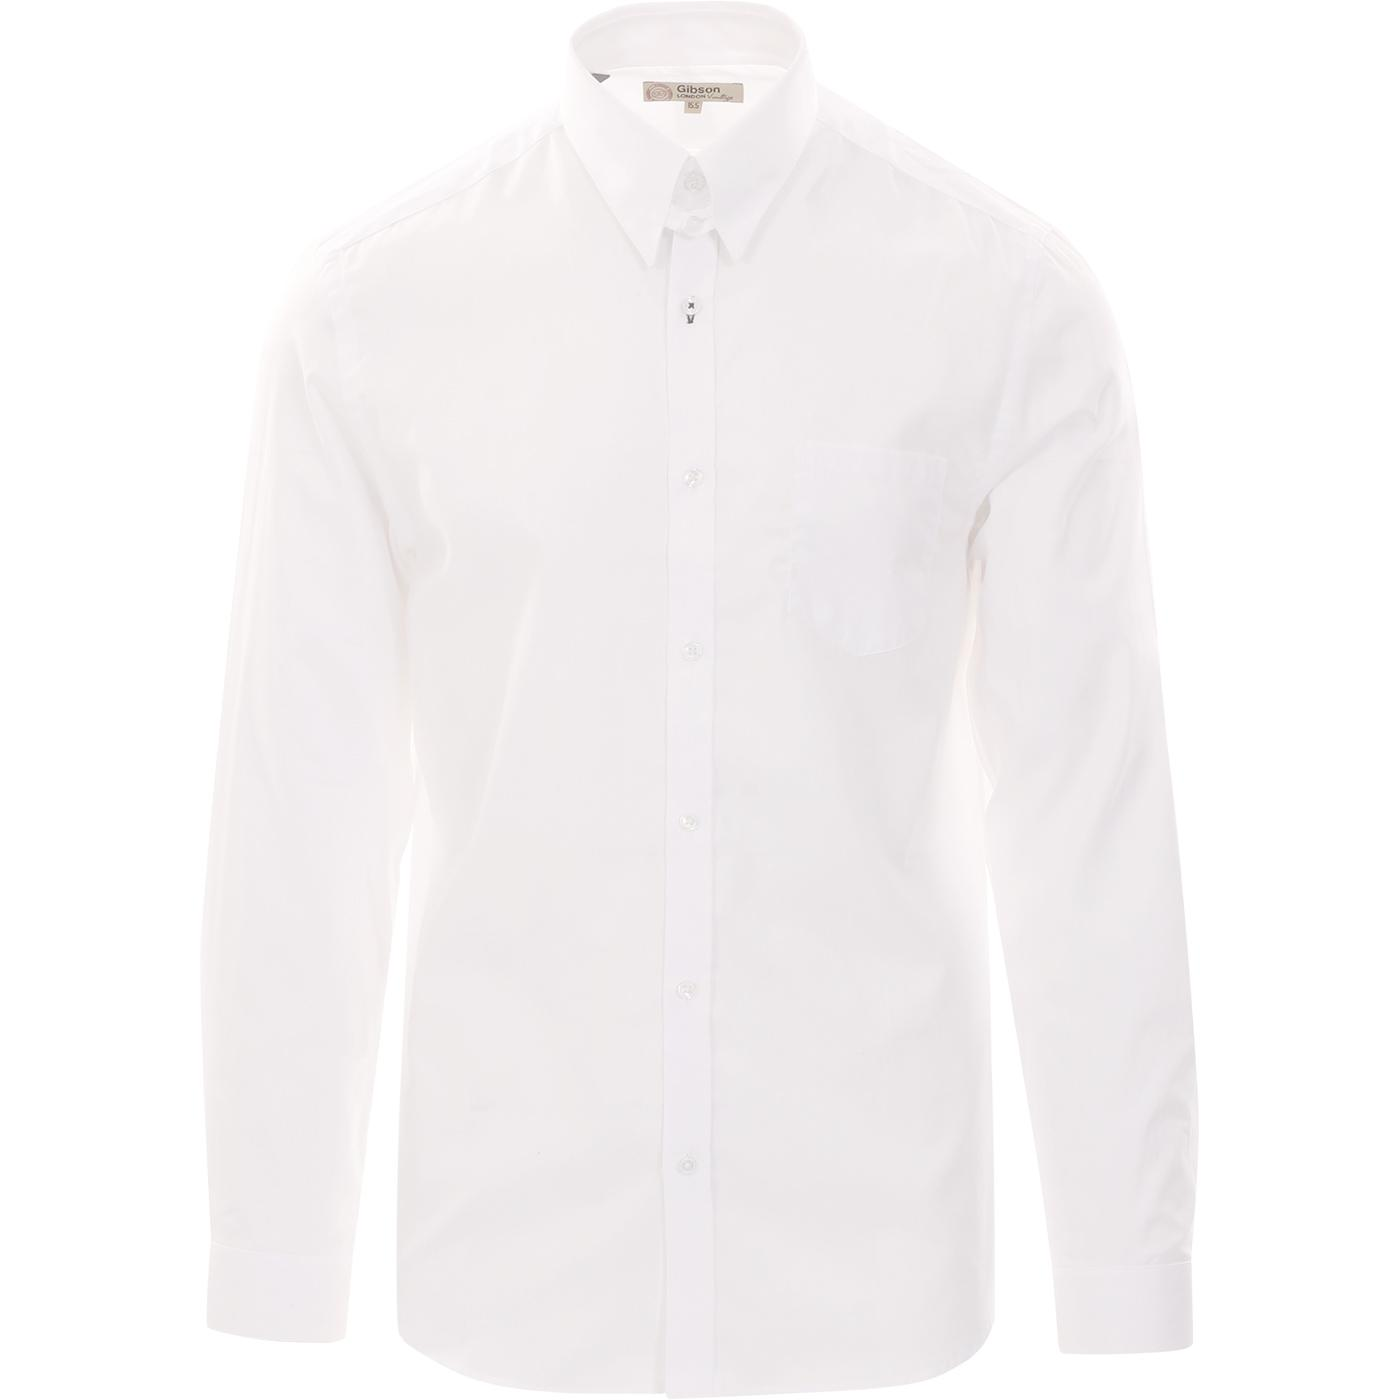 GIBSON LONDON Mod Smart Oxford Tab Collar Shirt